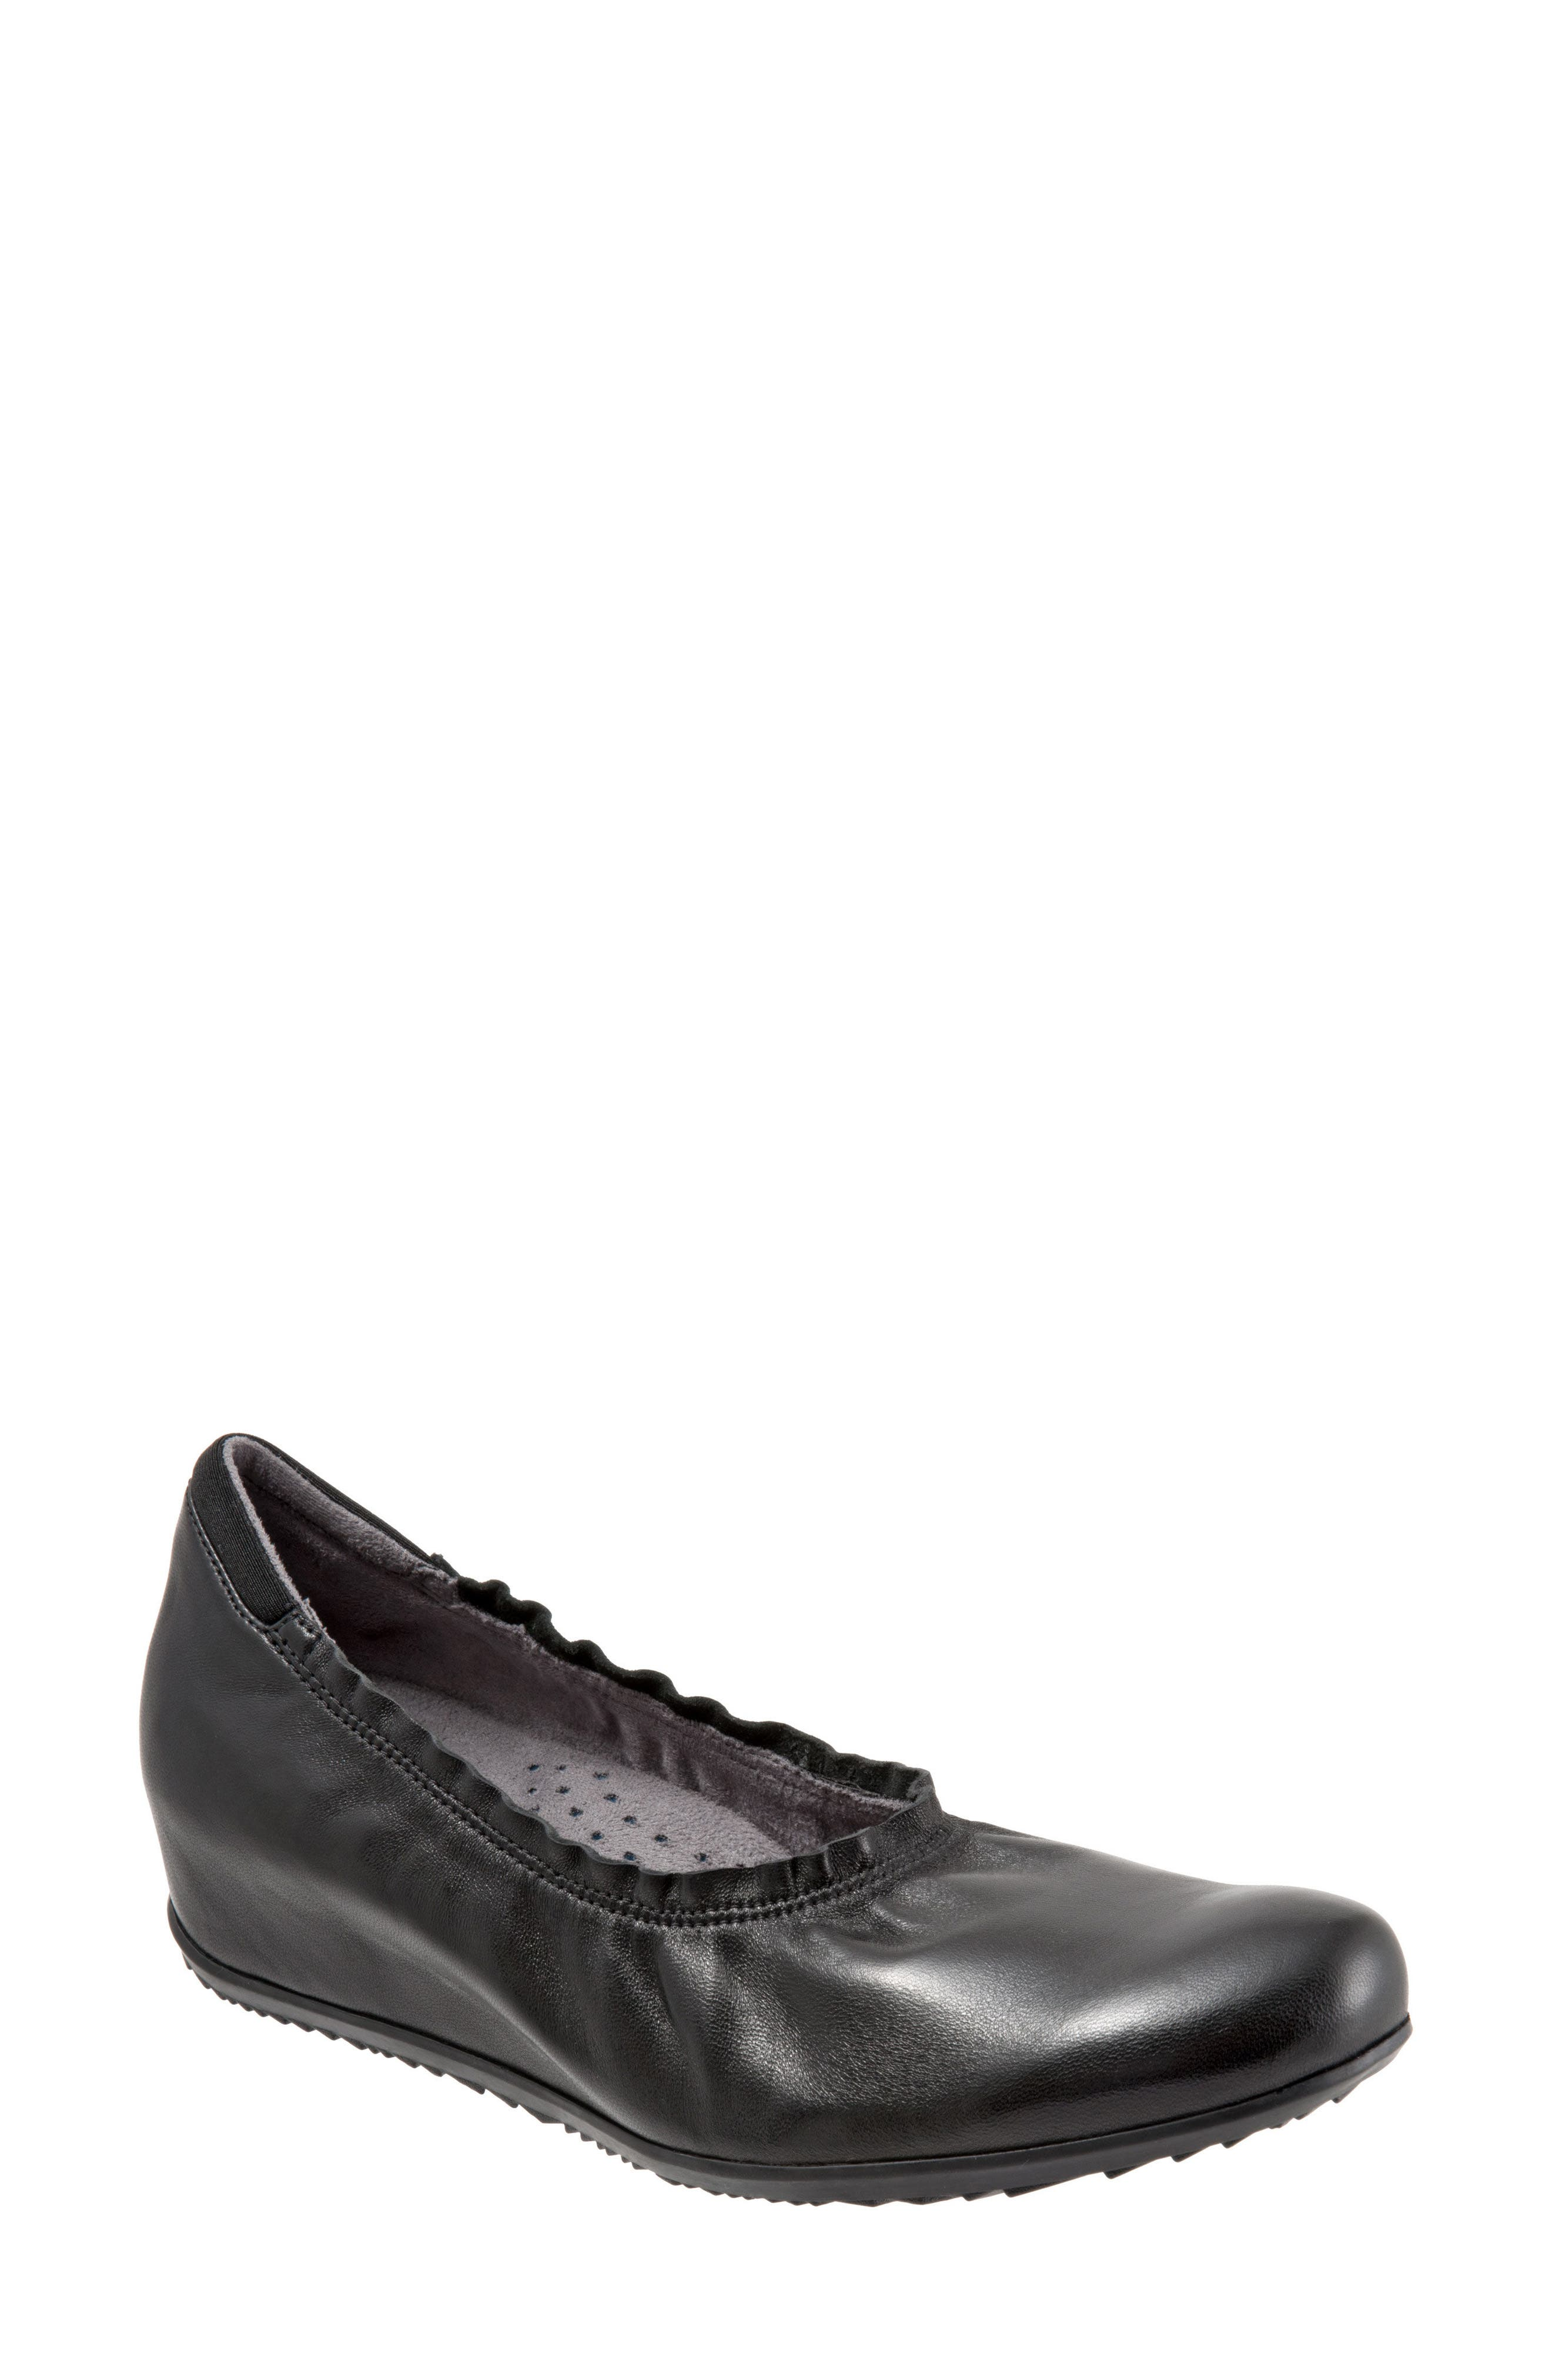 SOFTWALK<SUP>®</SUP>, Wish Ballet Wedge, Main thumbnail 1, color, BLACK LEATHER